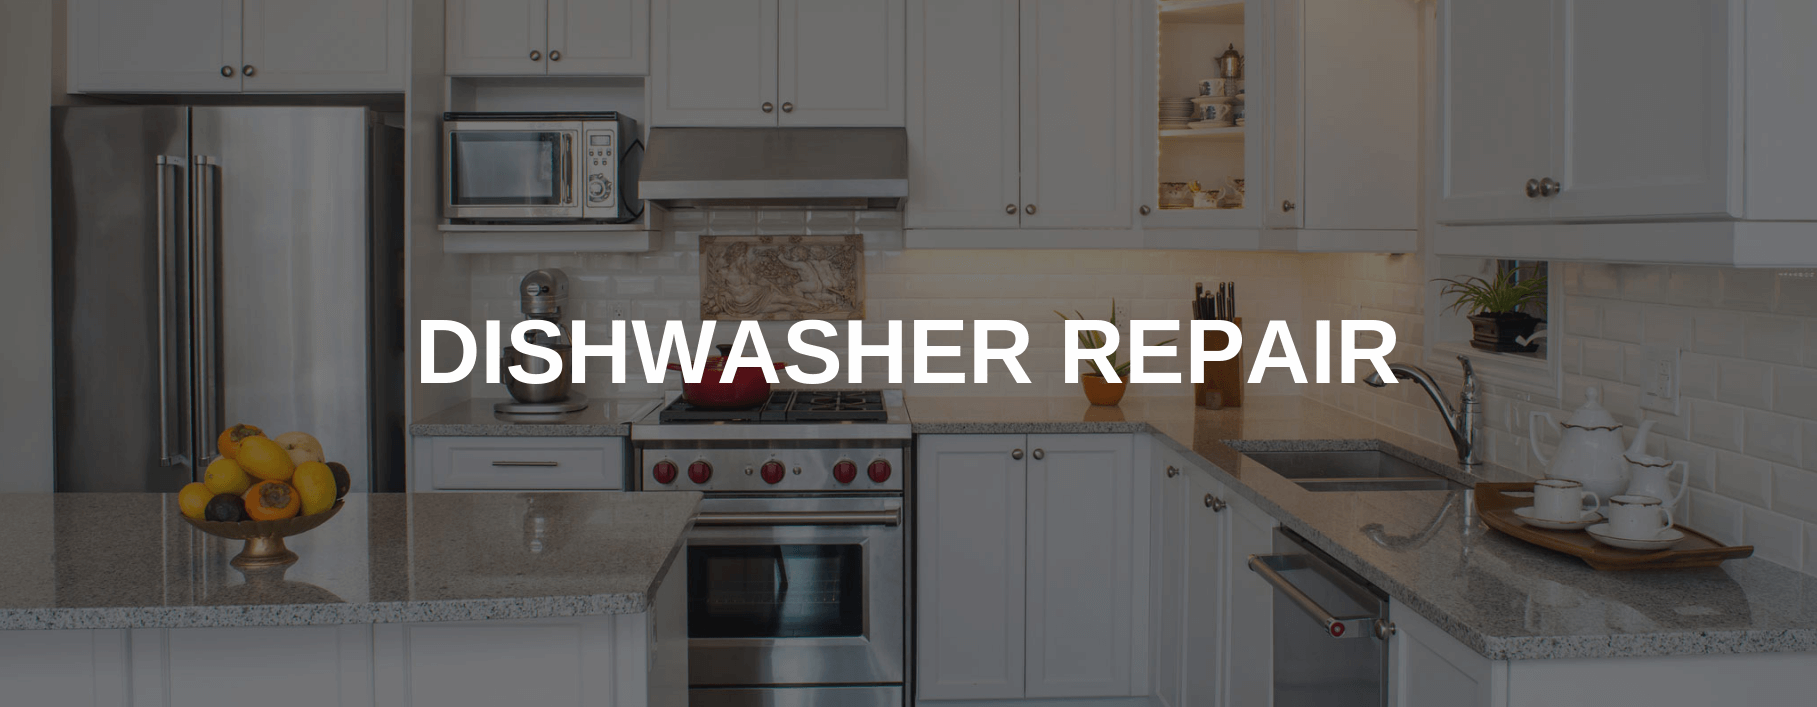 dishwasher repair jackson